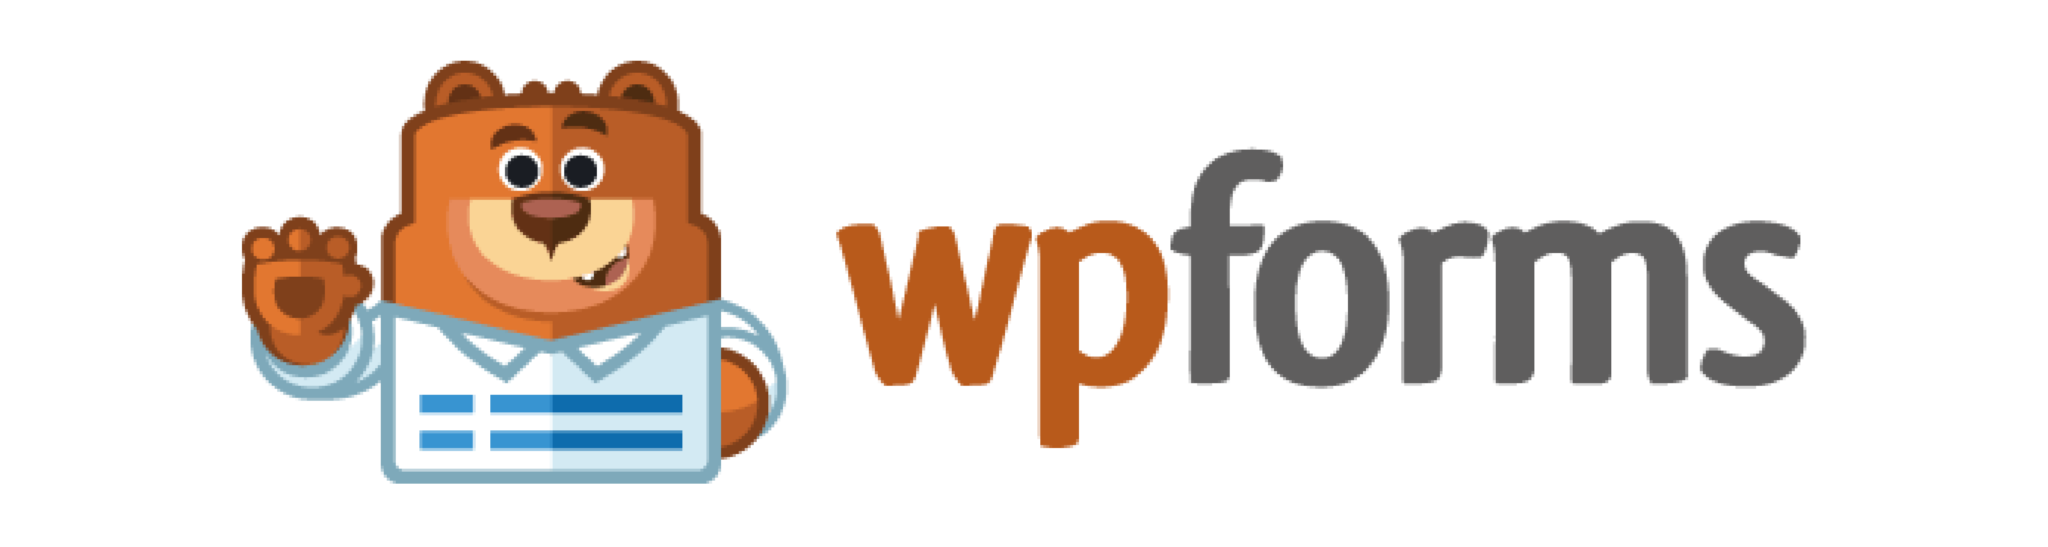 wp-forms